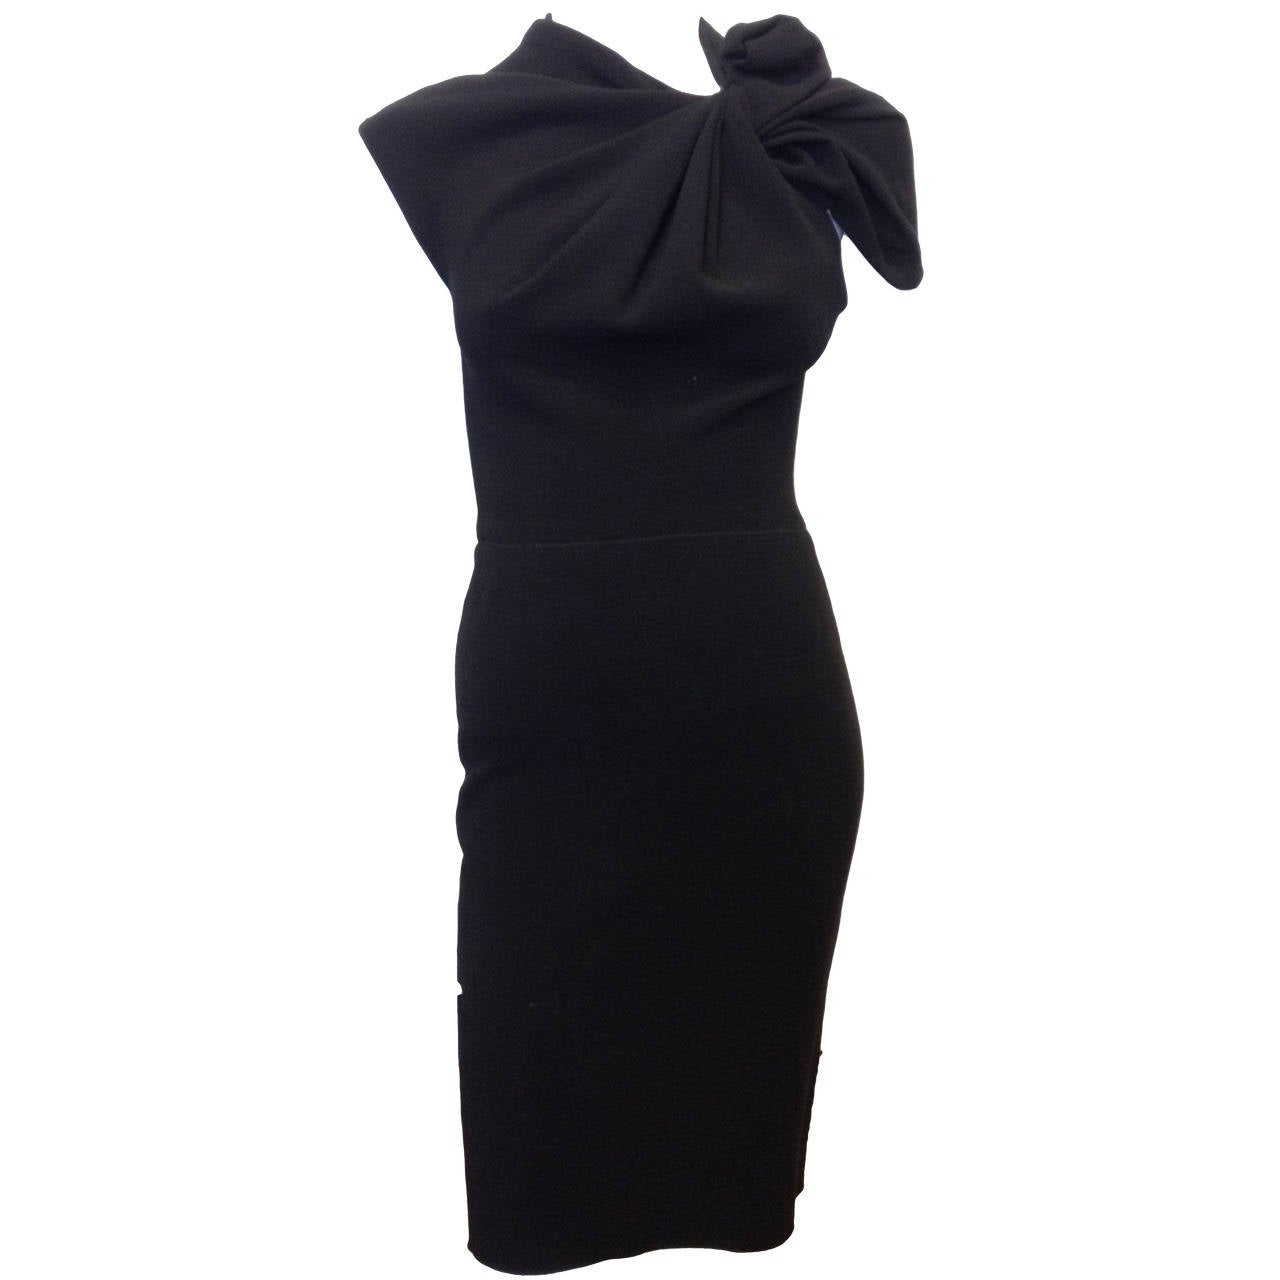 Lanvin Black Cocktail Dress with Bow For Sale